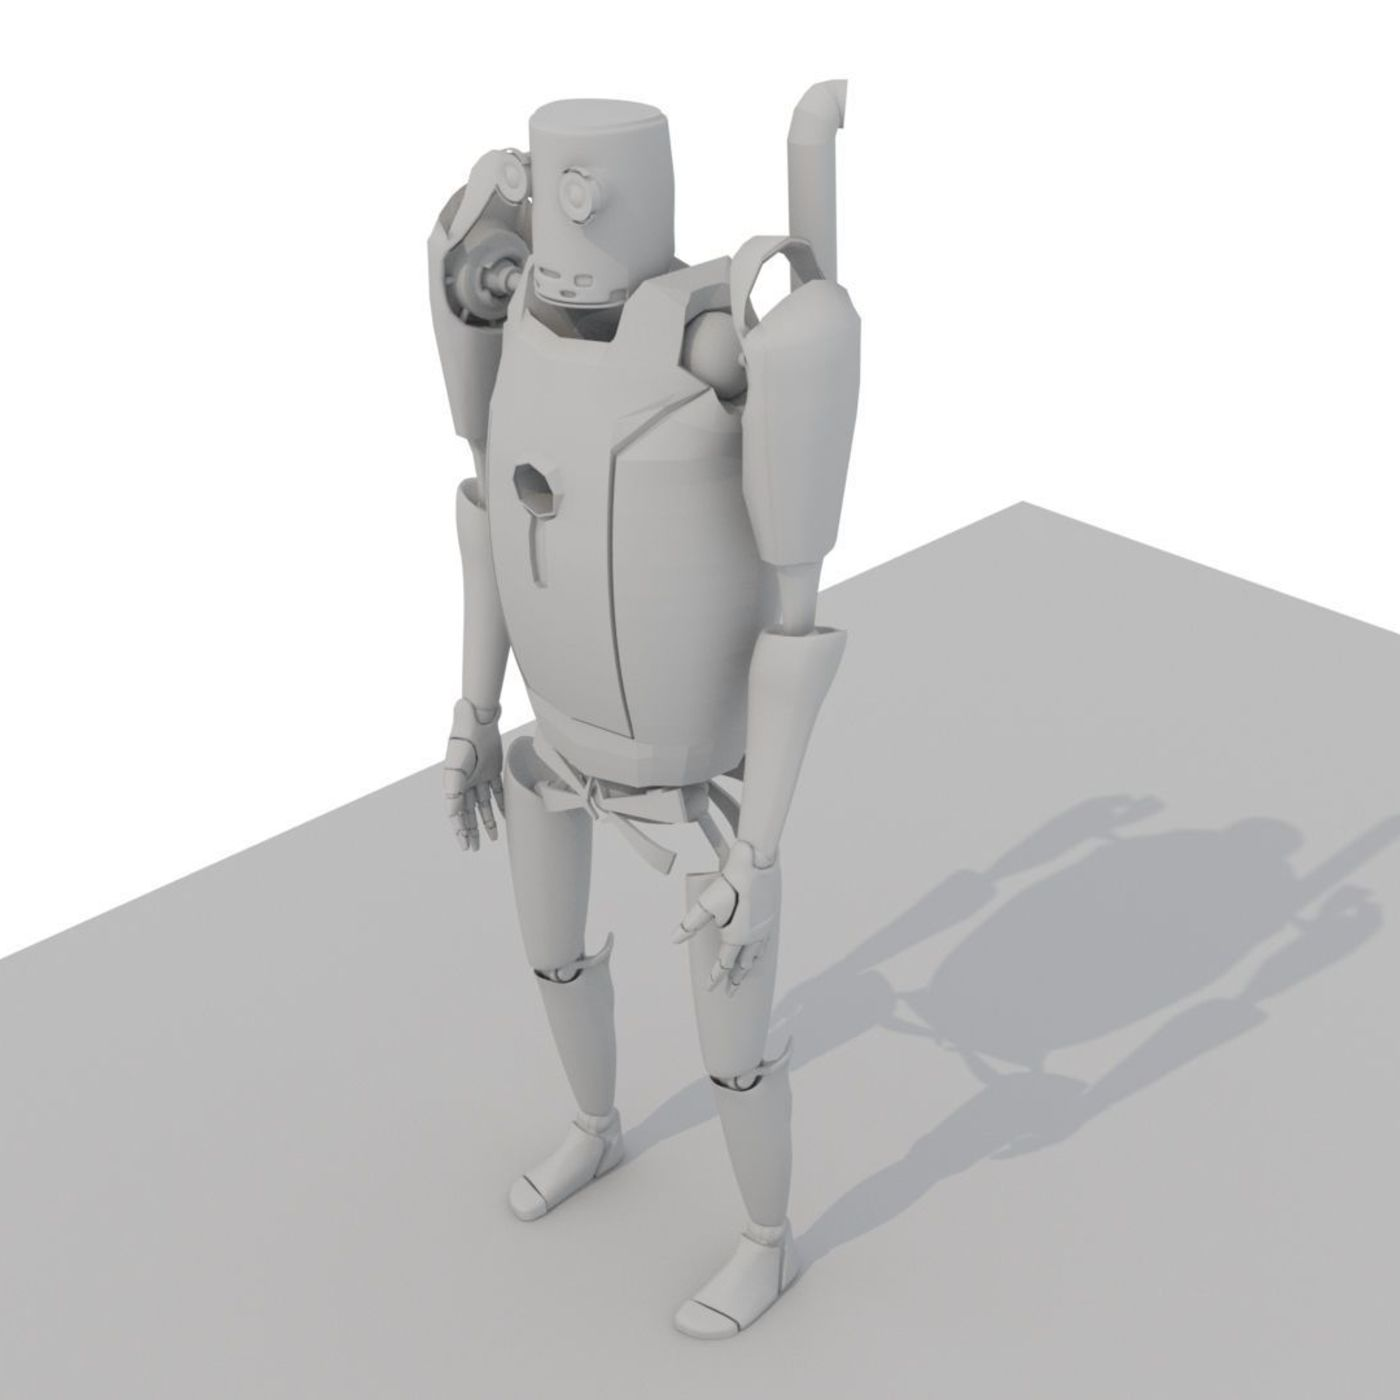 Droid model